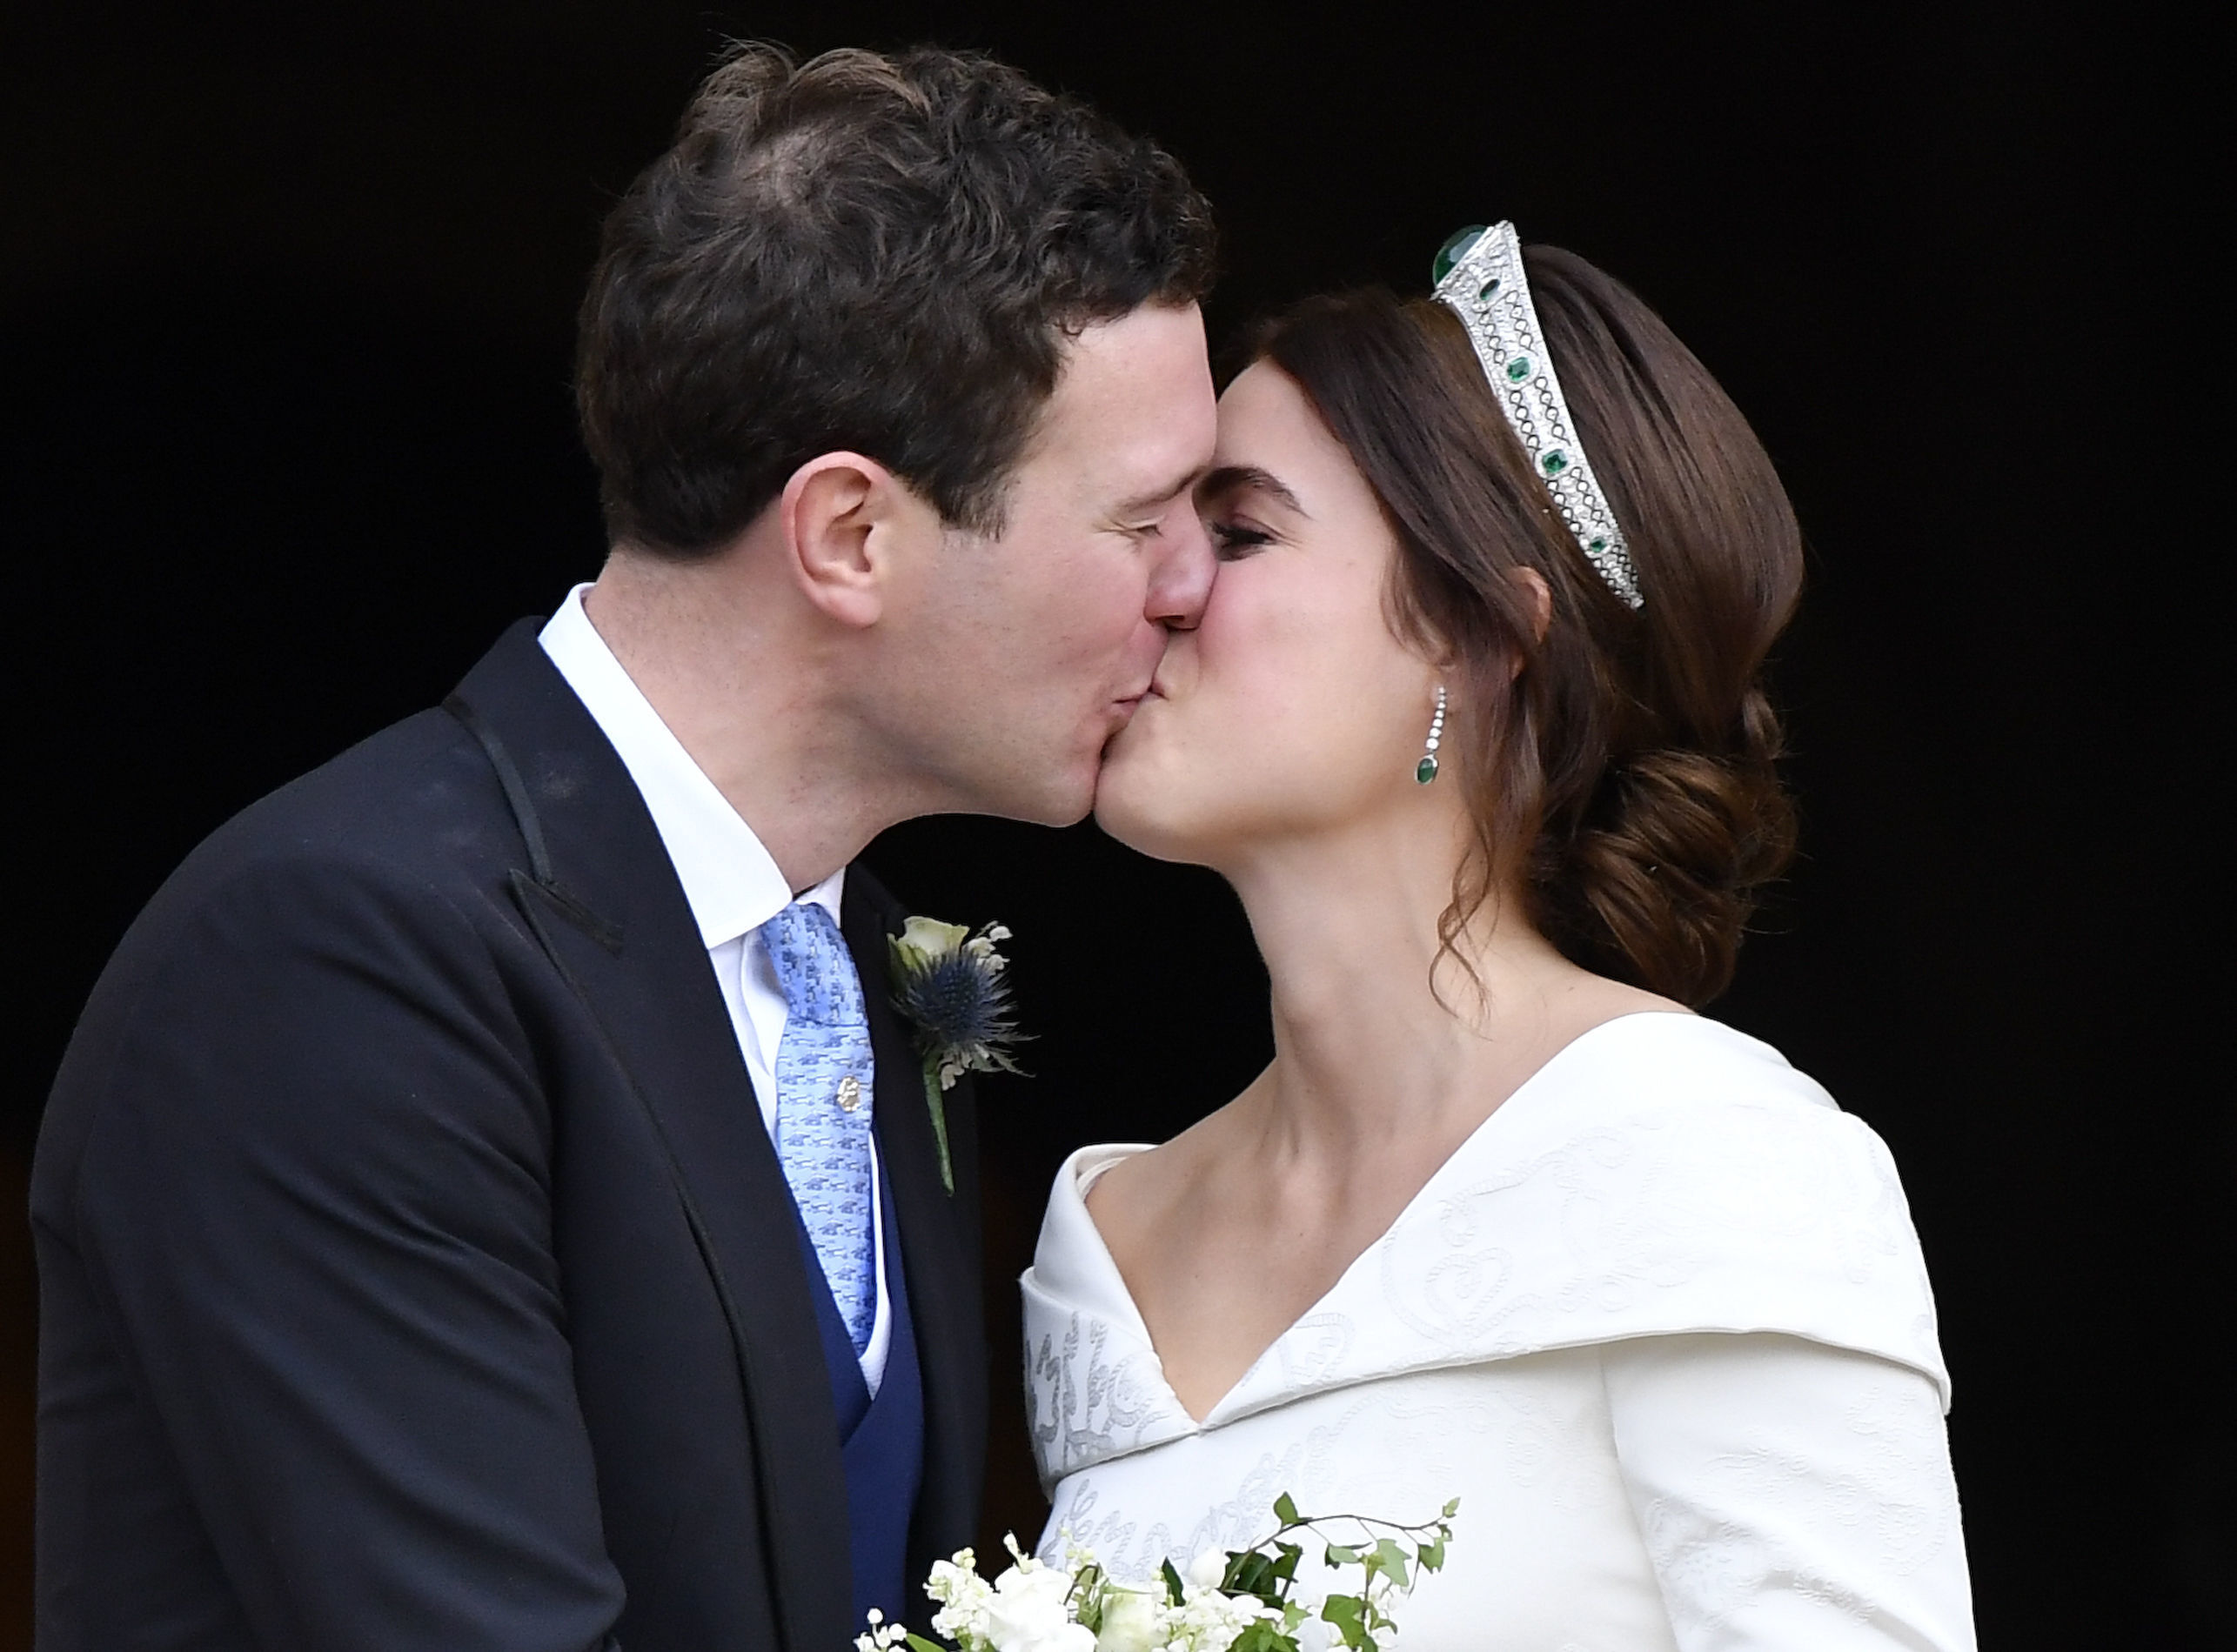 Demi Moore, Naomi Campbell and More Stars Attend Princess Eugenie's Royal Wedding